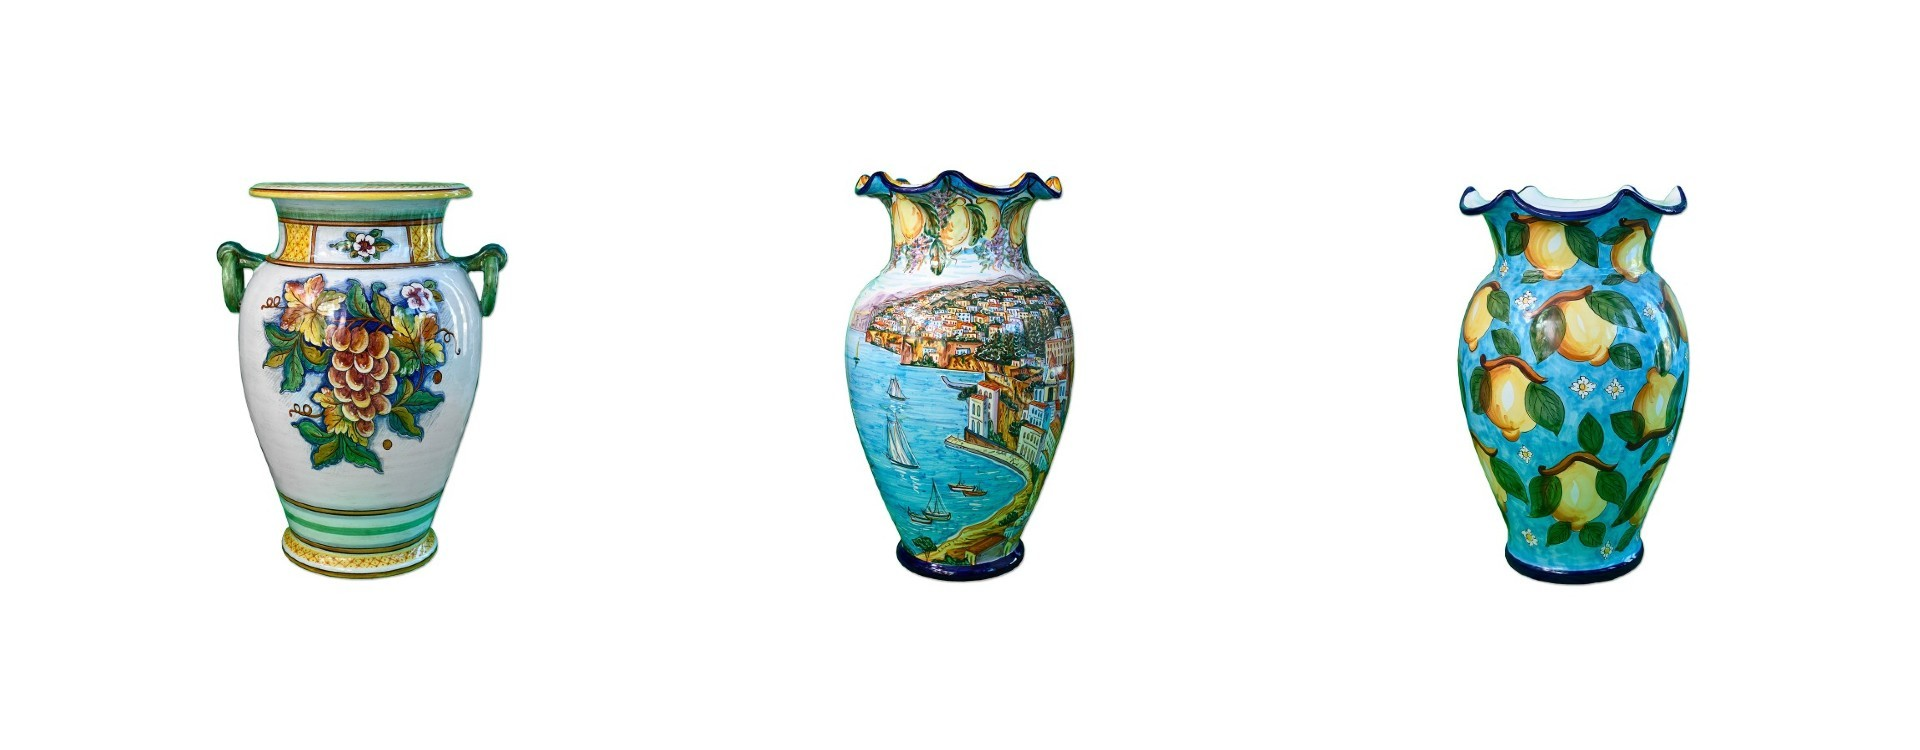 Italian Vases: our proposal